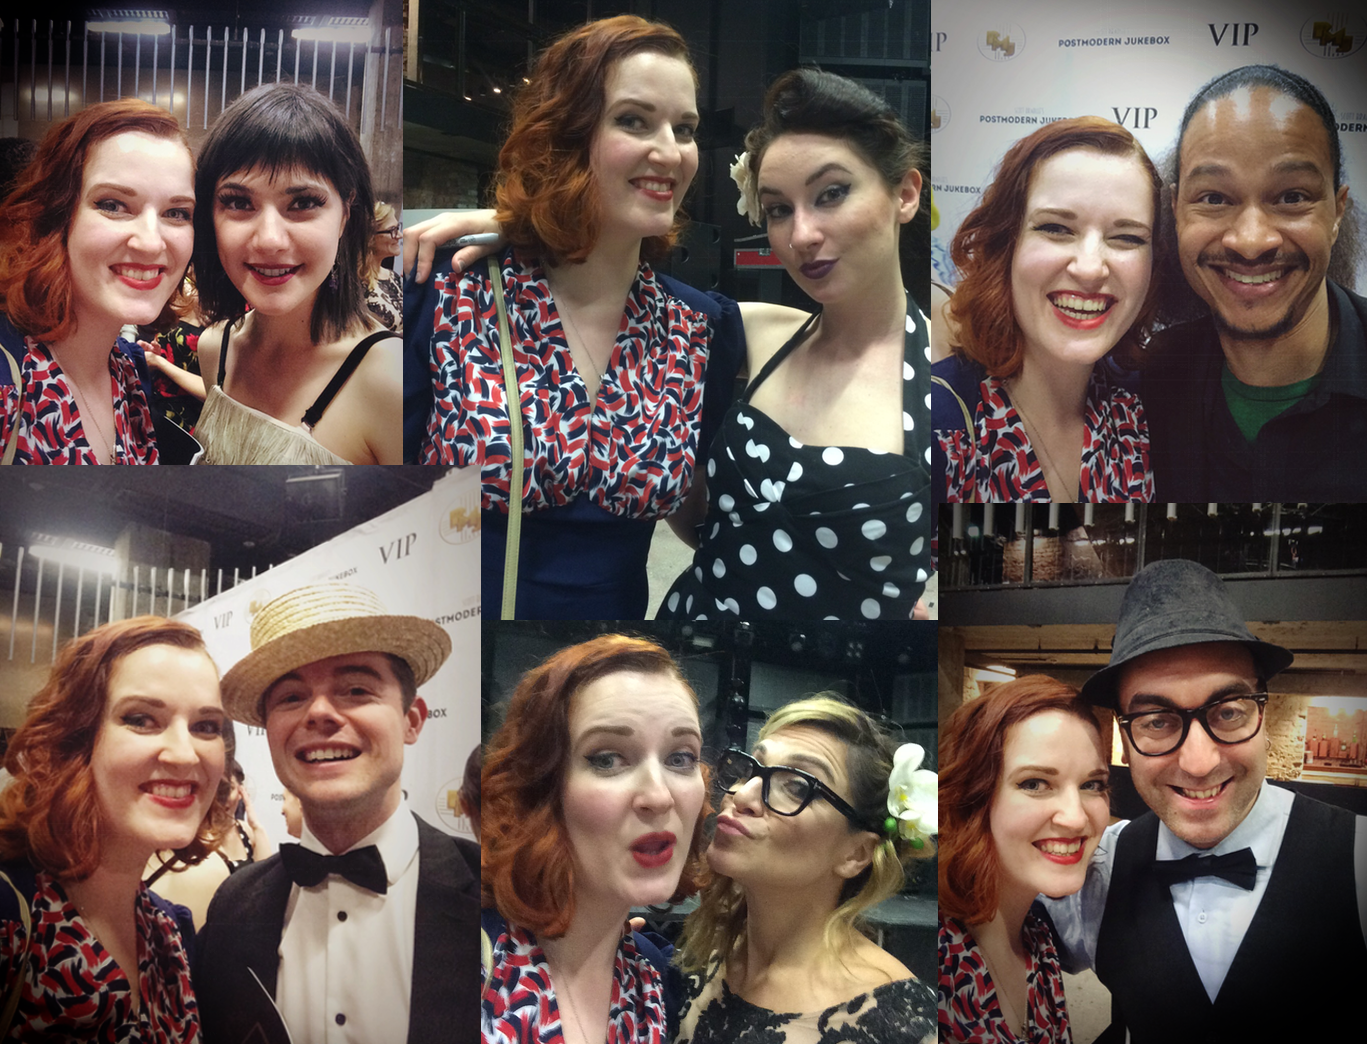 Postmodern Jukebox VIP